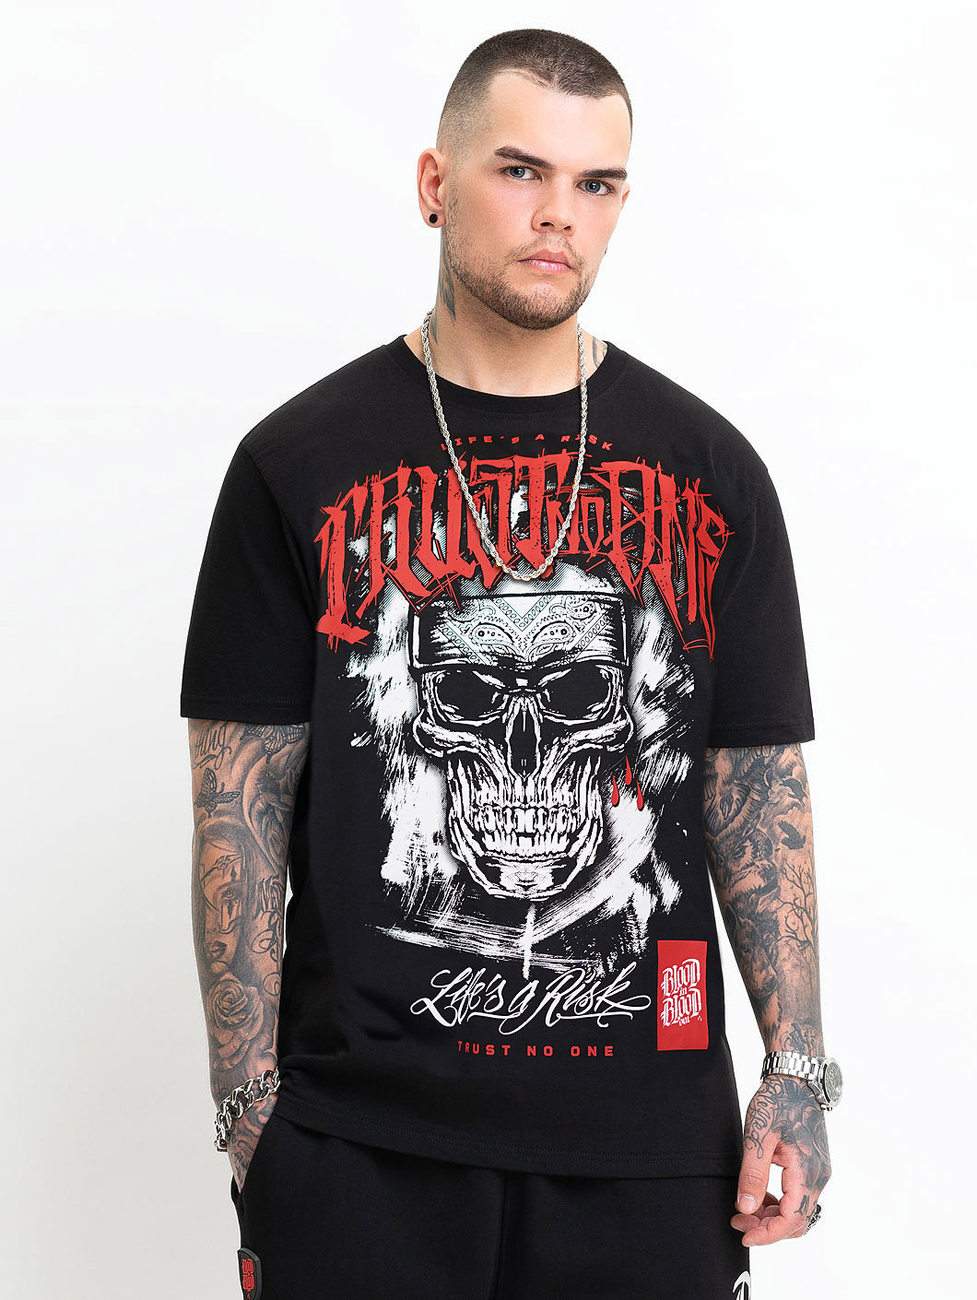 Blood In Blood Out Bandaro T-Shirt XL